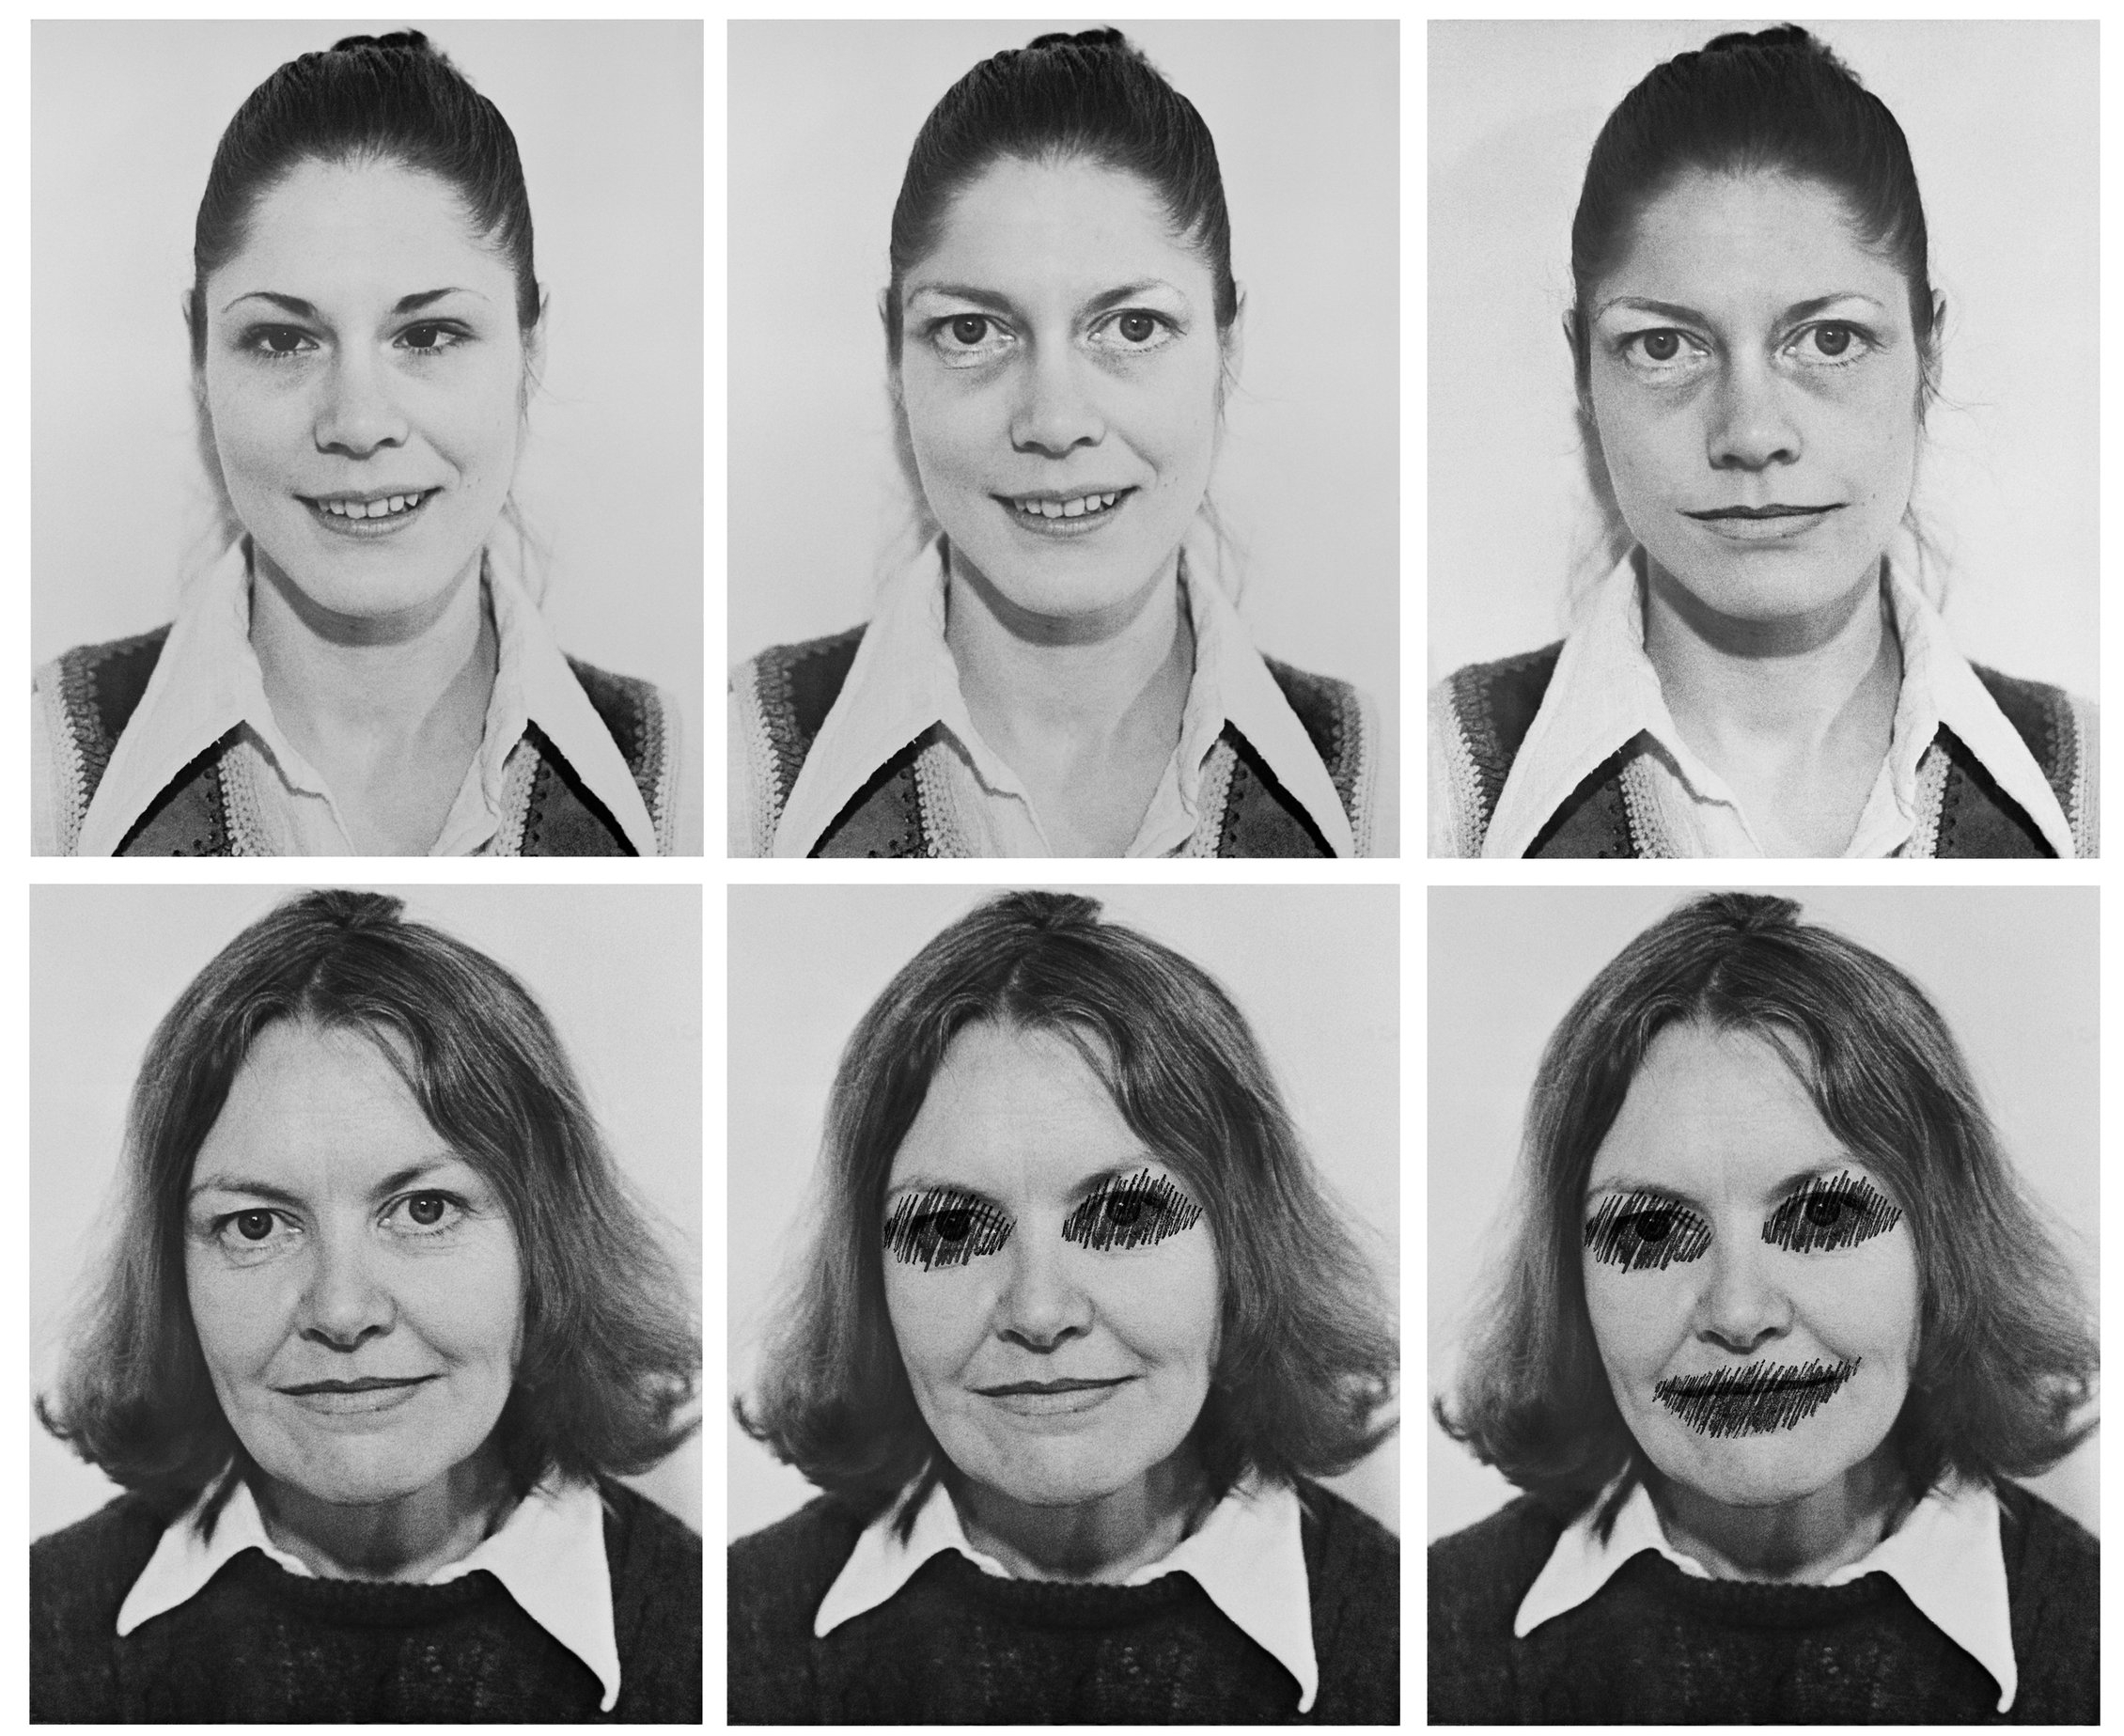 Suzy Lake as Françoise Sullivan, 1975/2012, grid sequence of 6 works, approx. 72 x 87.25 inches, digital prints